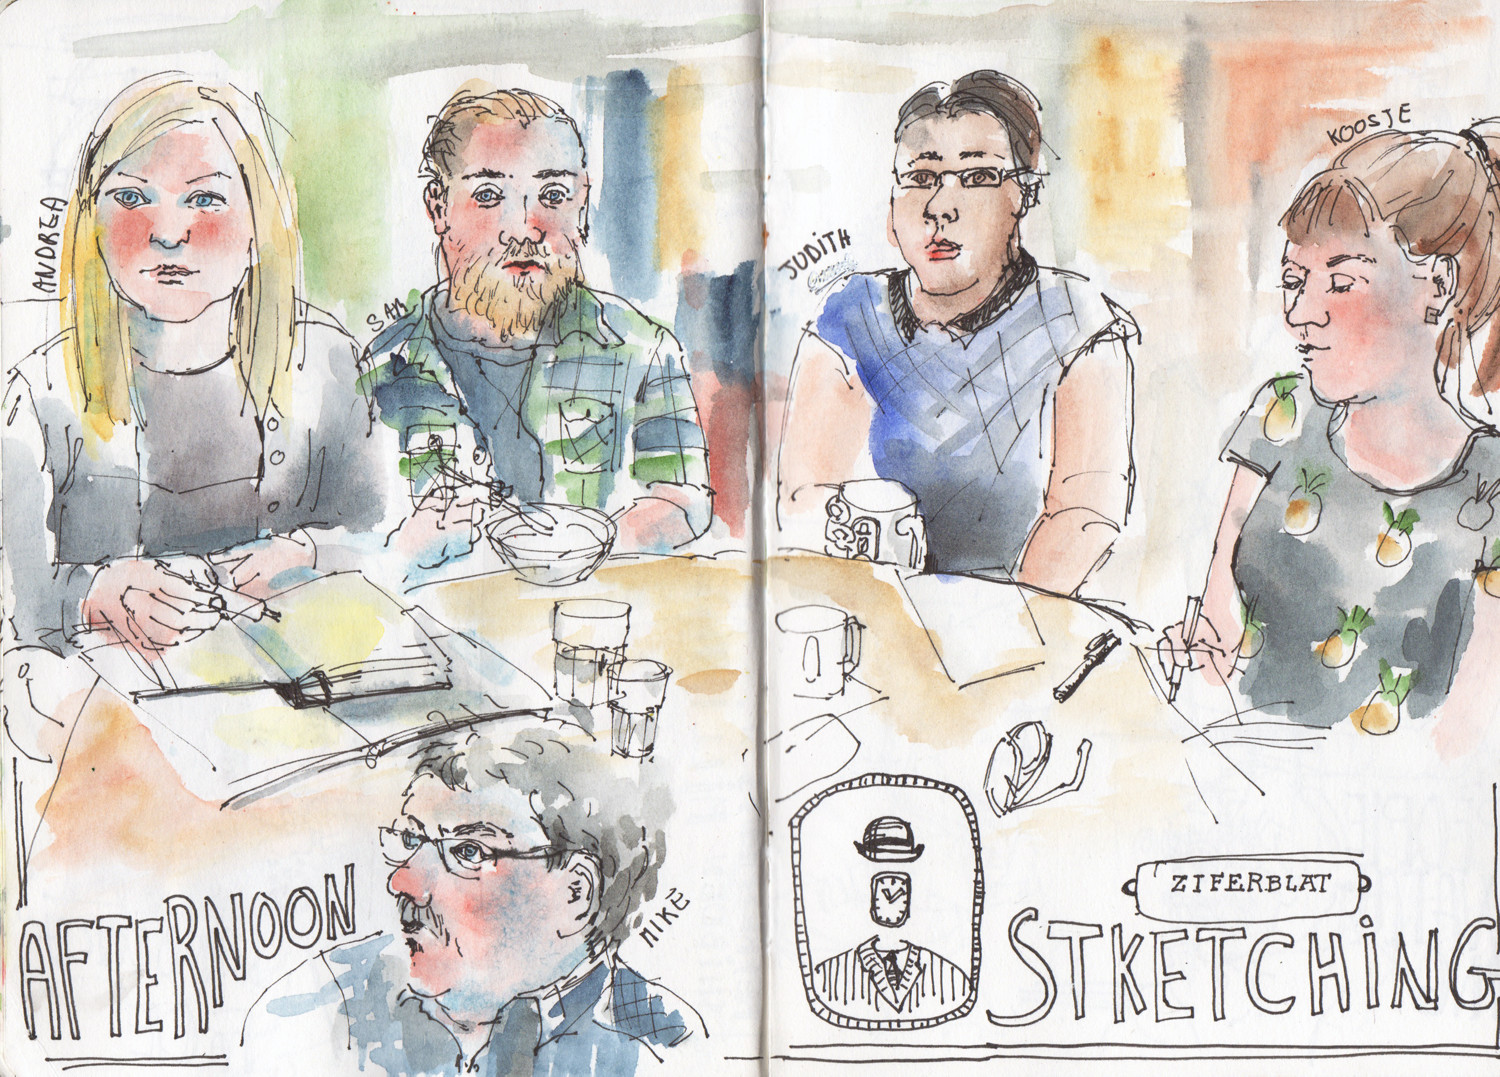 People Sketching - Andrea Joseph, Sam and Judith from Envelope Films, Koosje Koene and Mike at Ziferblat in Manchester